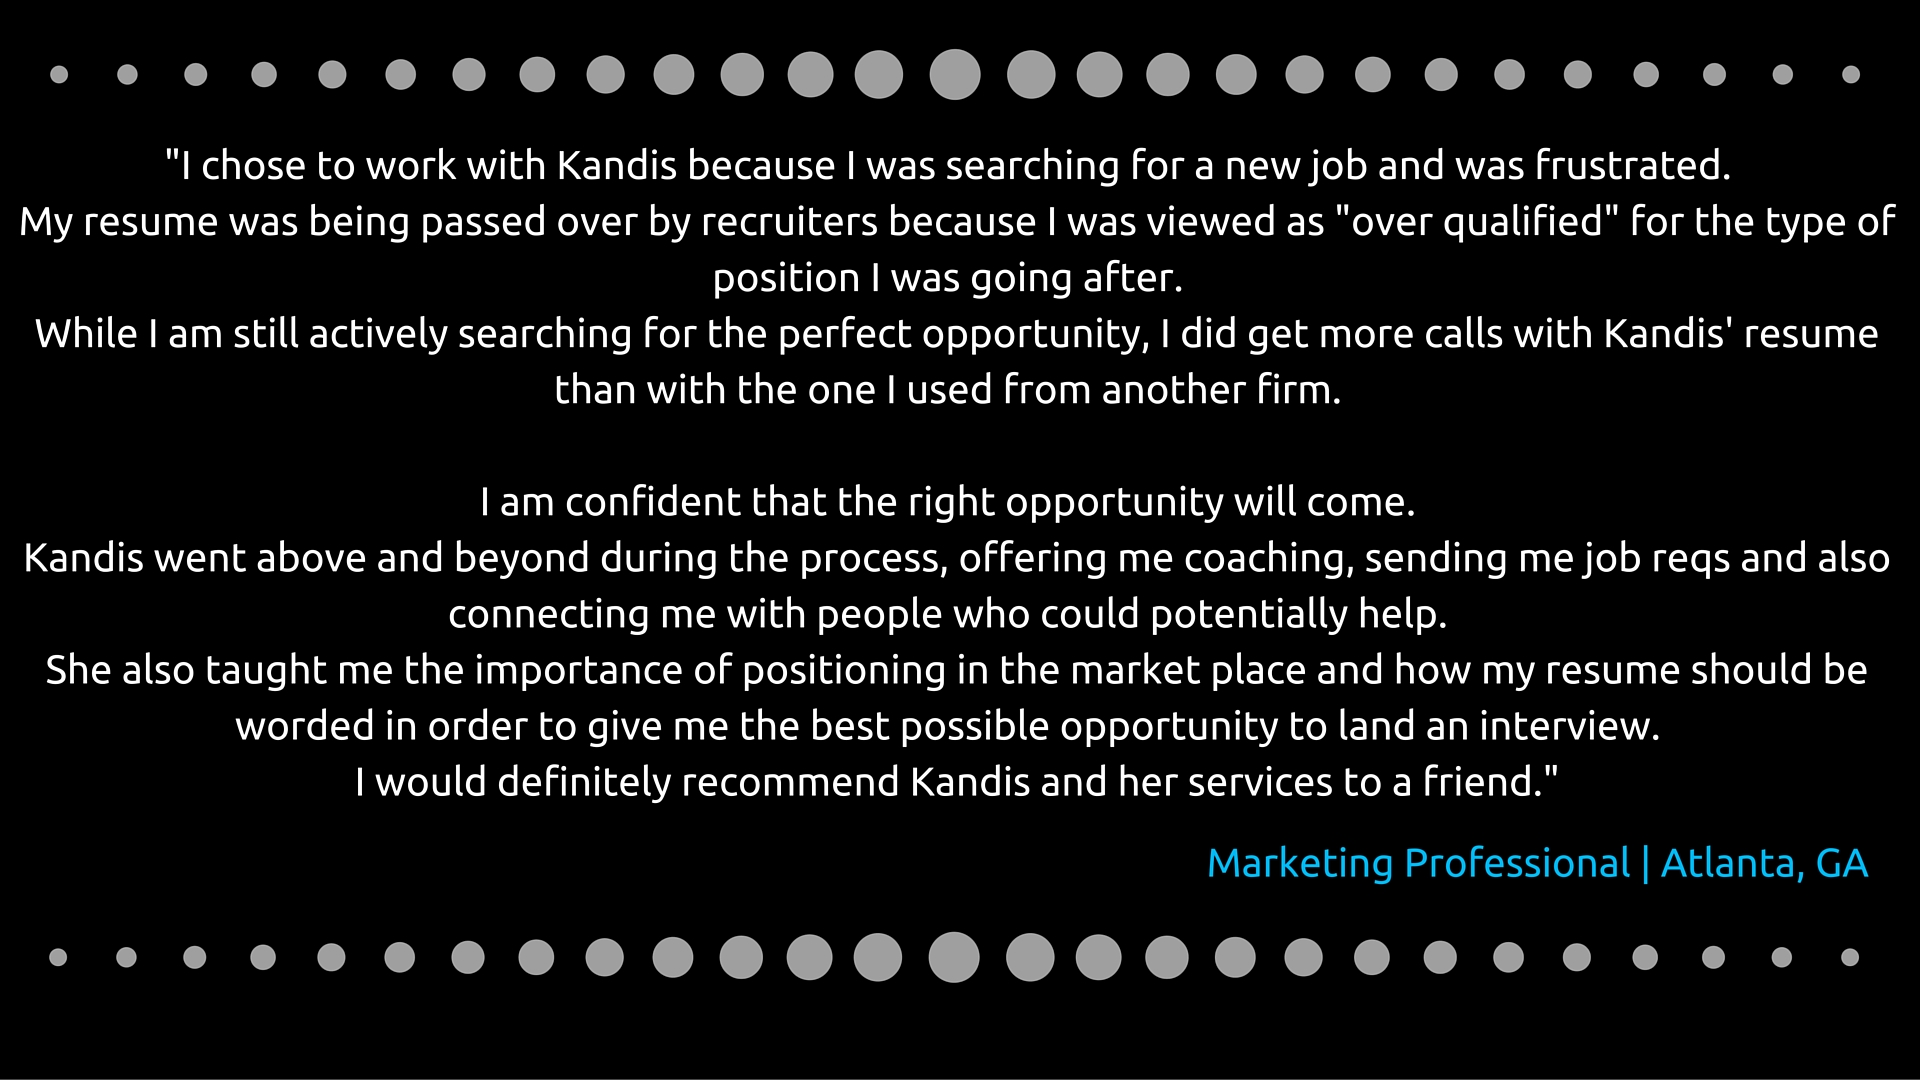 Marketing professional testimonial